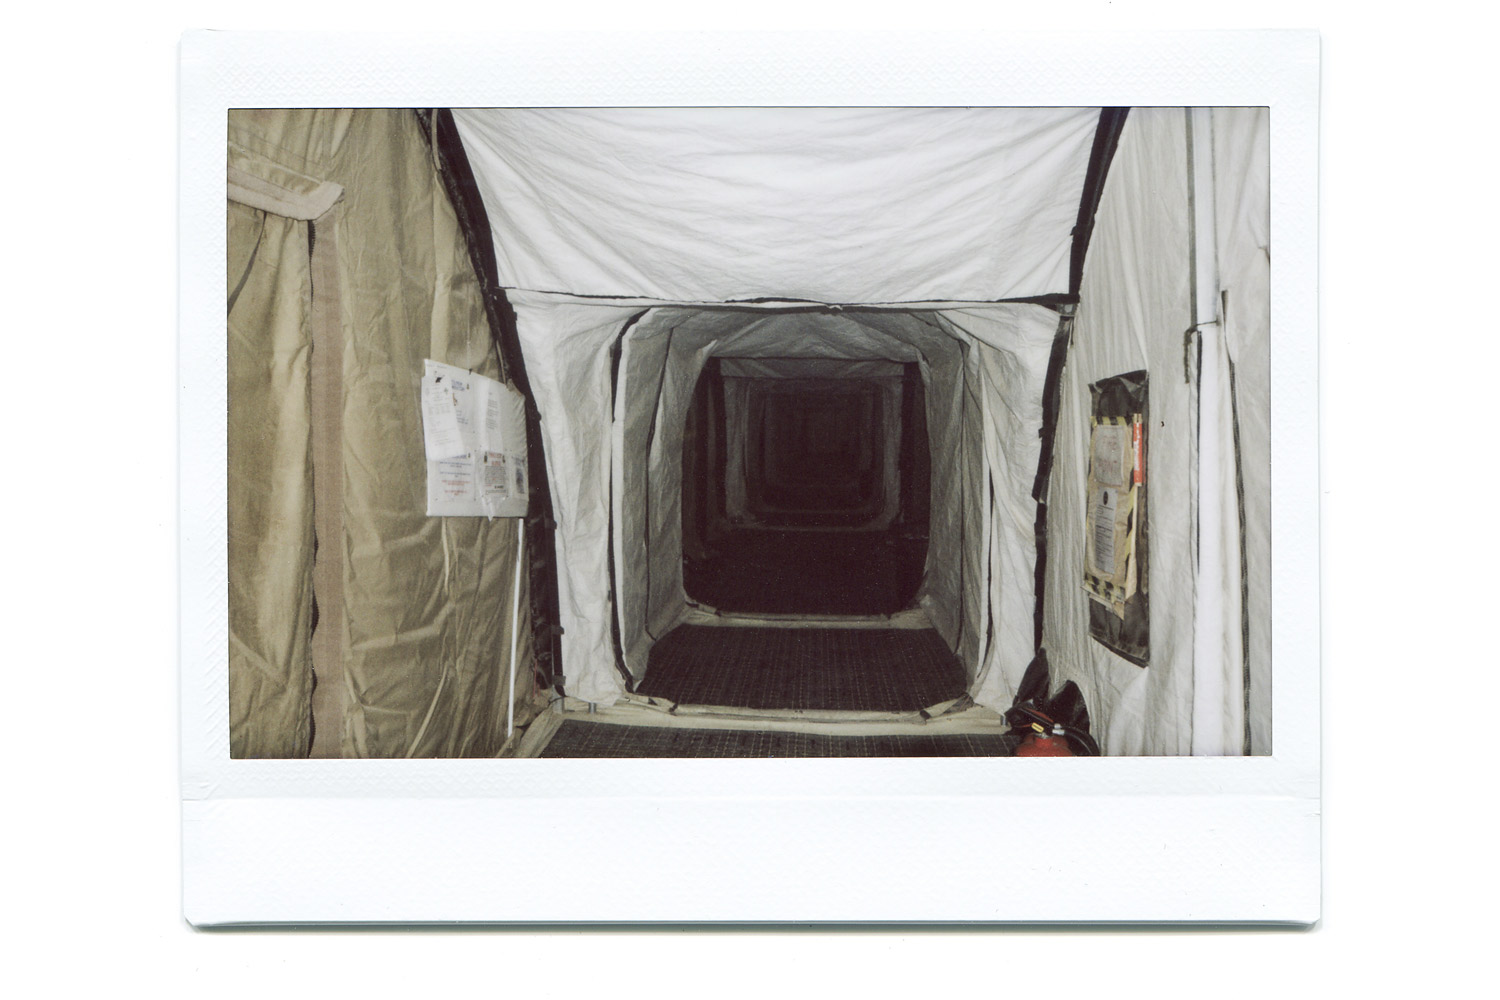 A corridor in tented accommodation.  Walked through here many times a day, liked the way it looked like a tunnel so decided to shoot it.